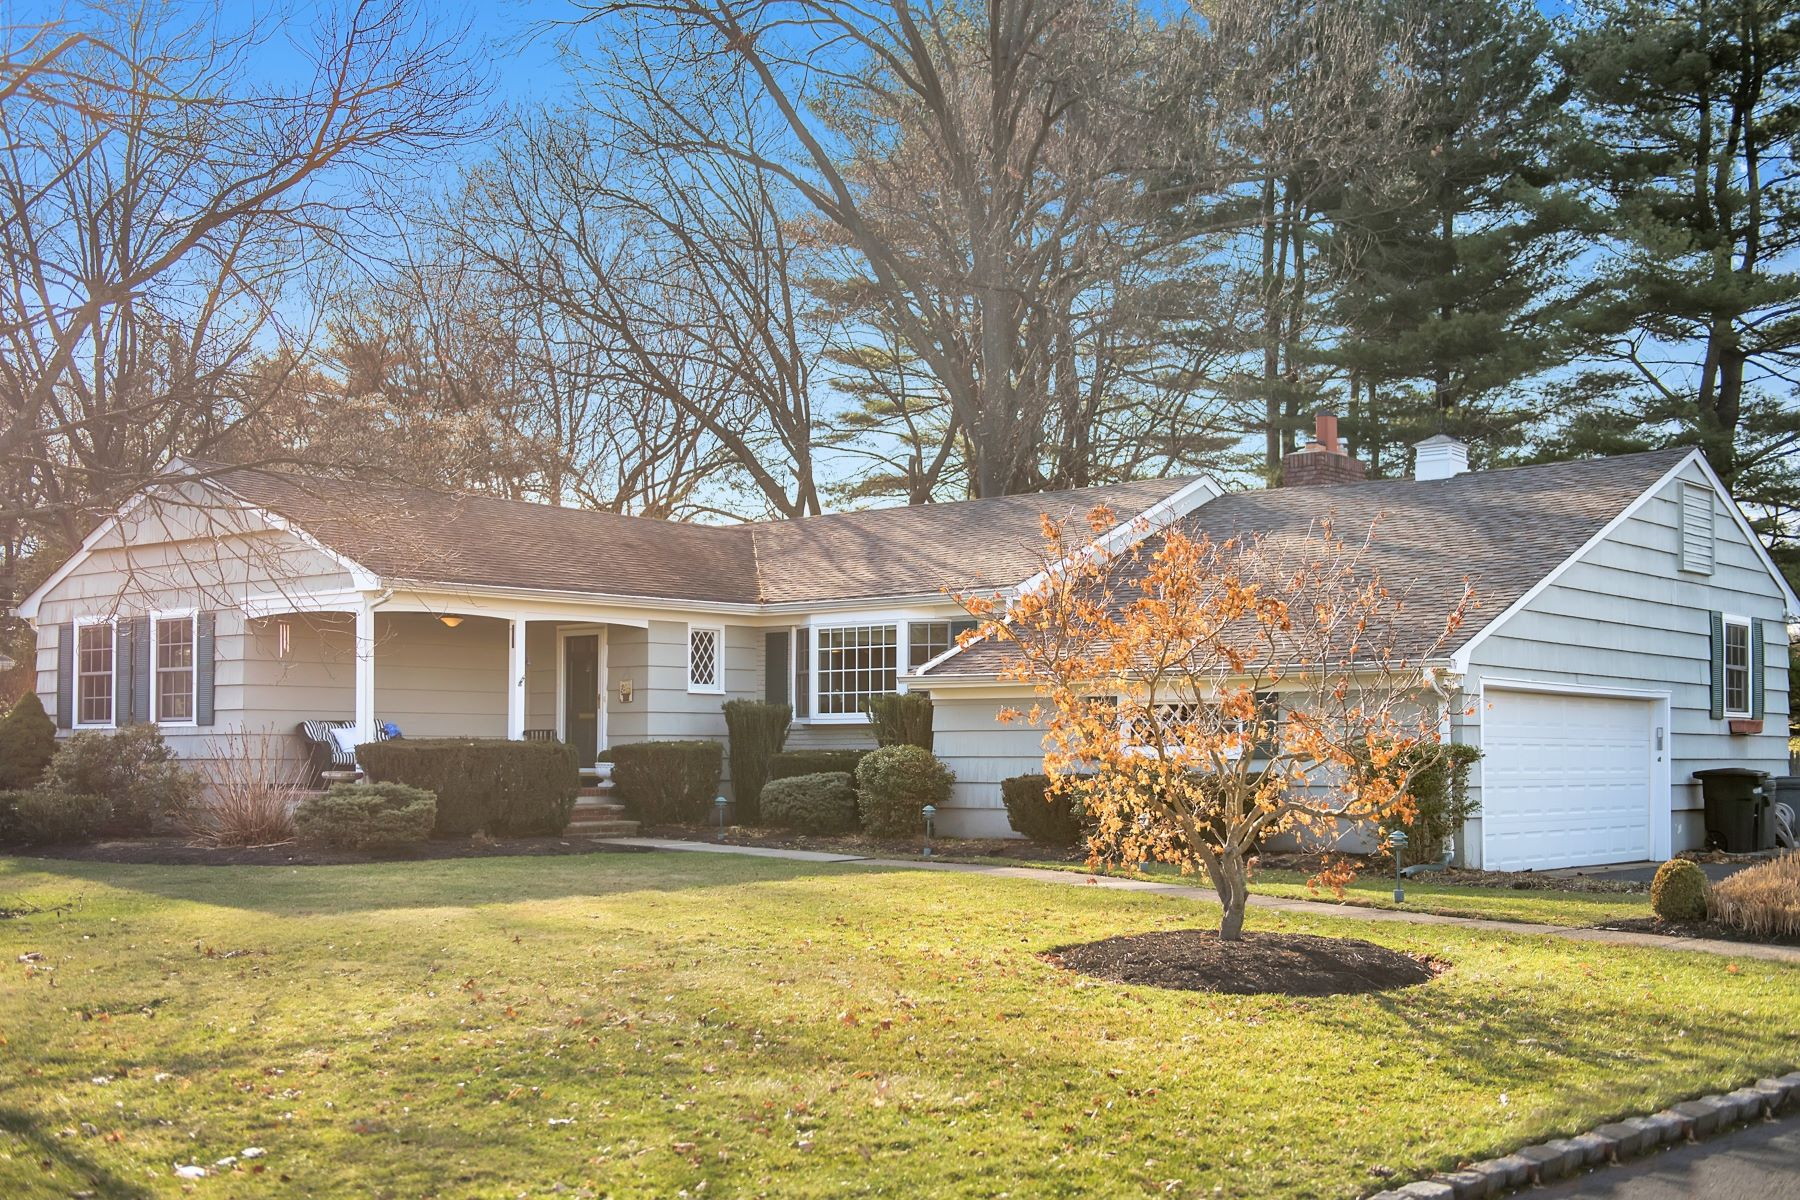 Single Family Home for Sale at This home offers a wonderful opportunity to move into a prime location 213 Golf Edge, Westfield, New Jersey, 07090 United States